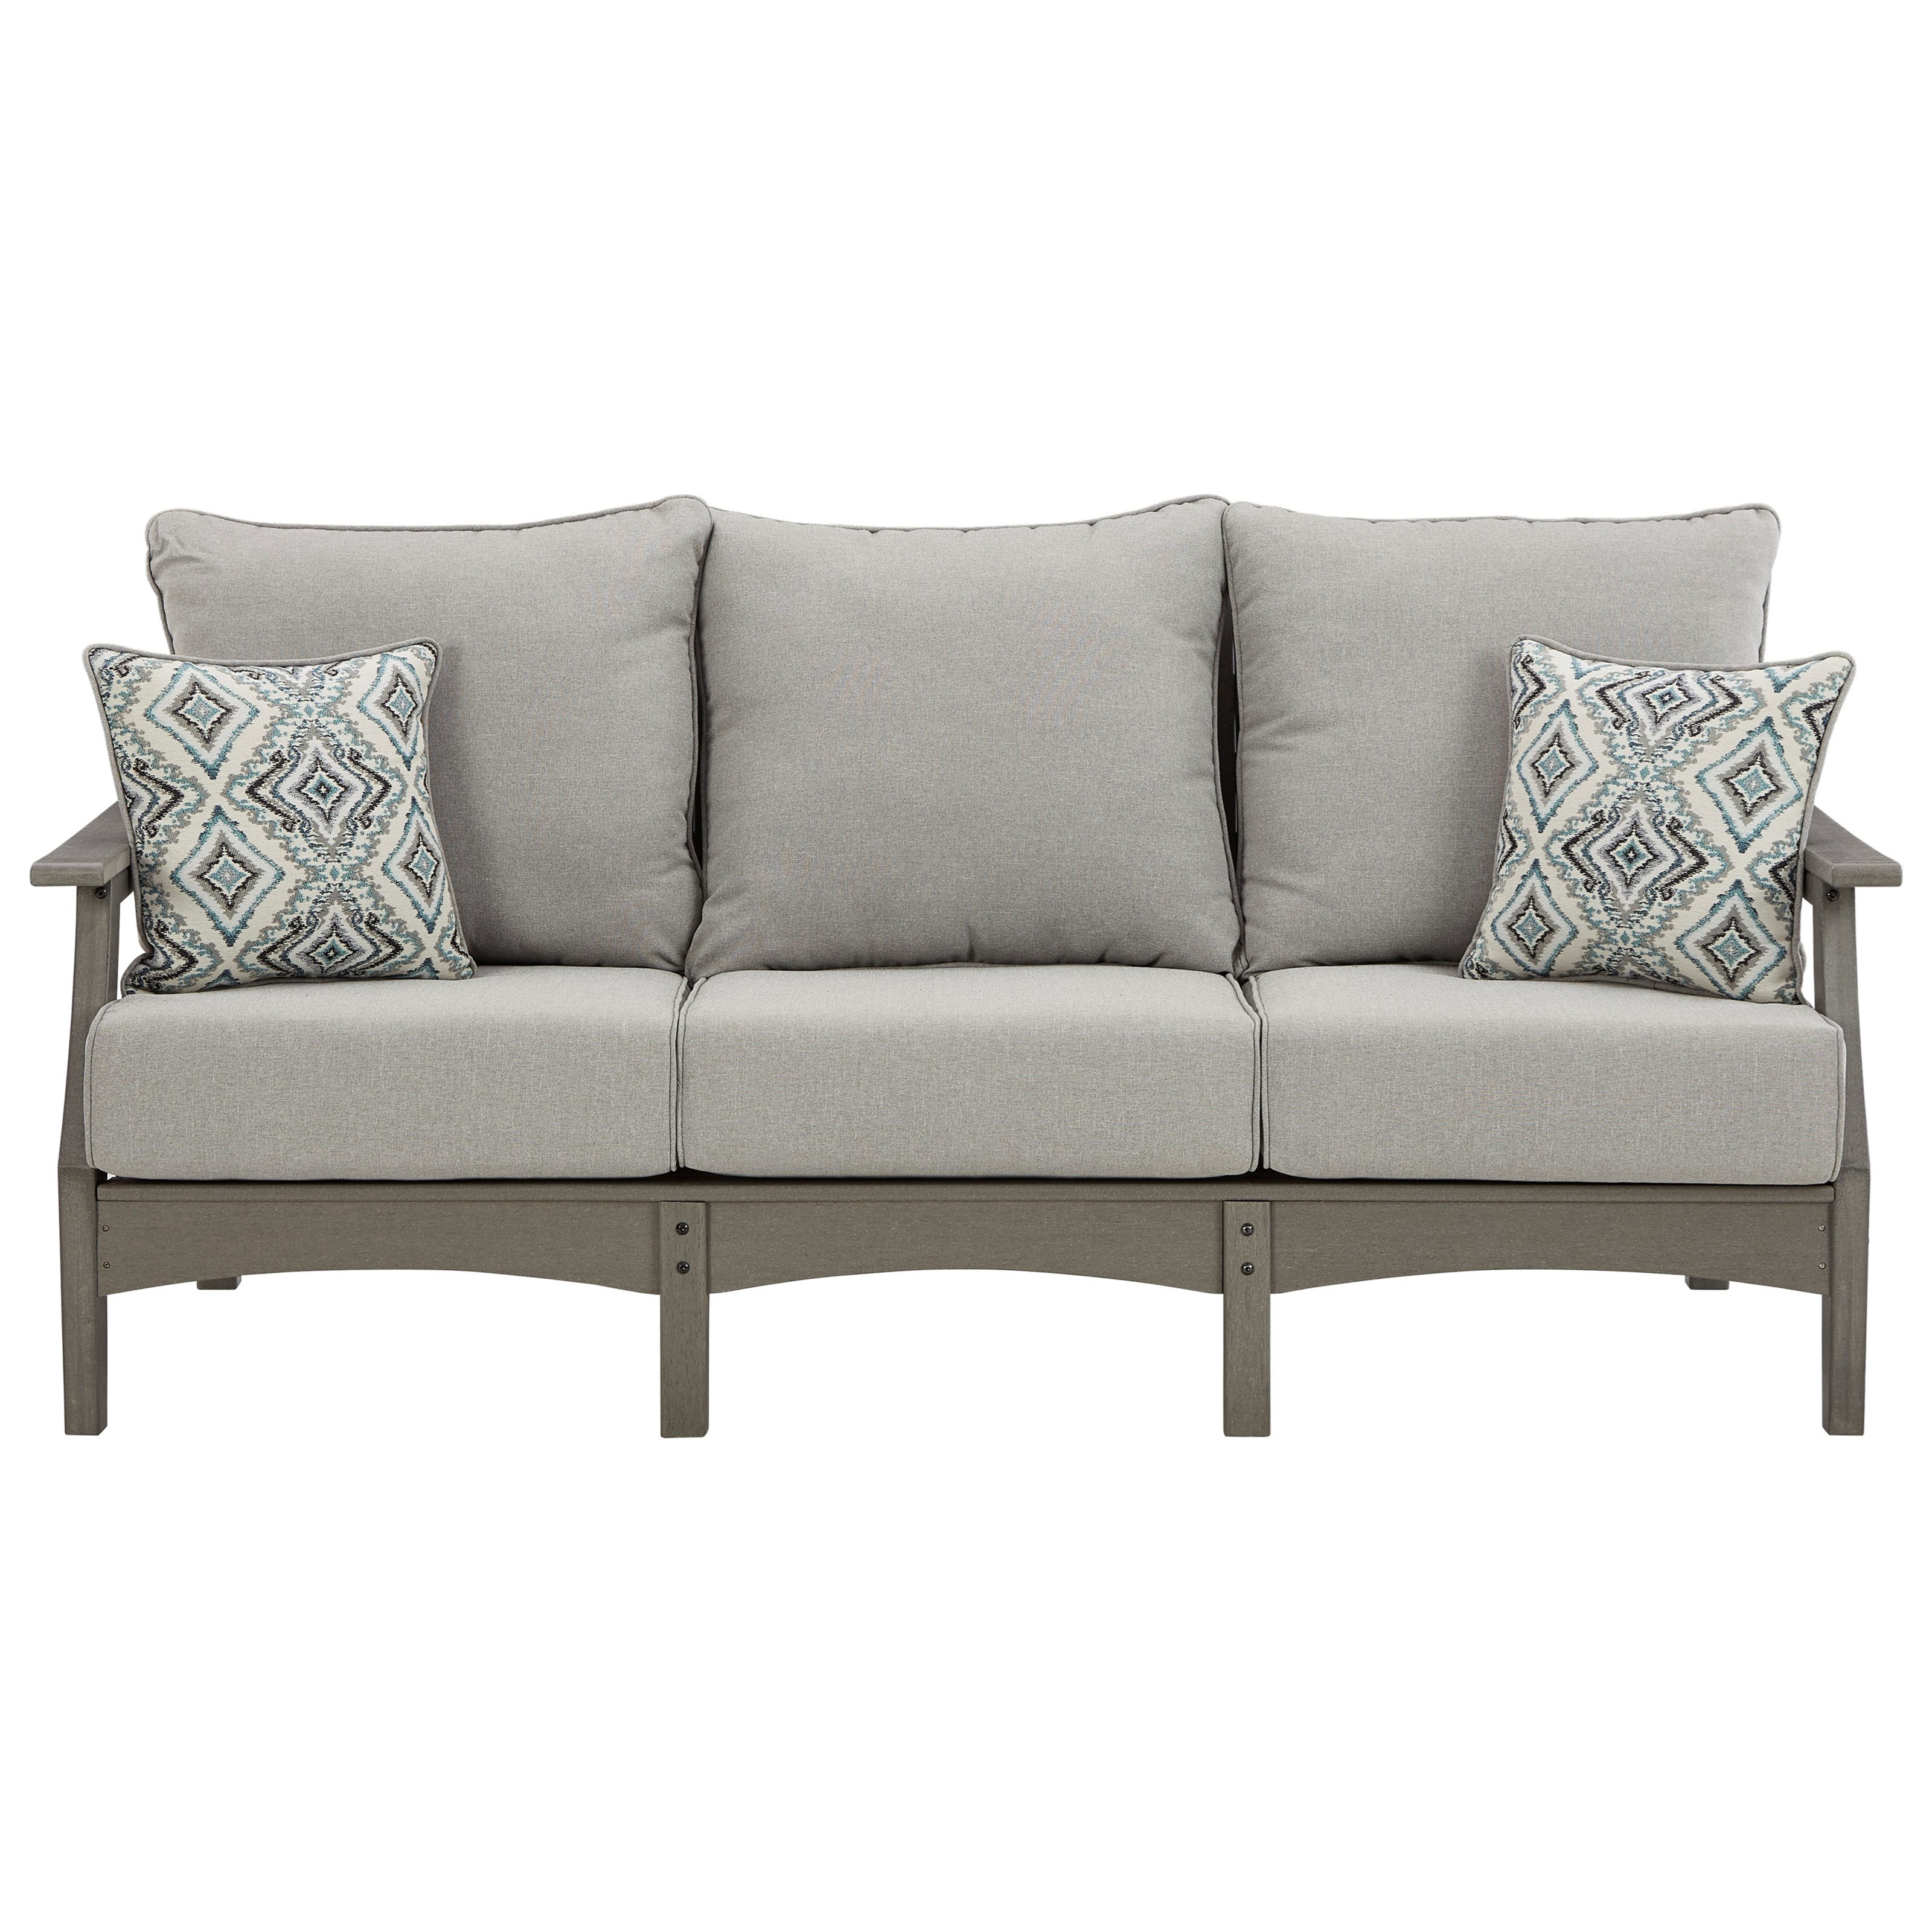 Visola Sofa with Cushion by Signature Design by Ashley at Darvin Furniture